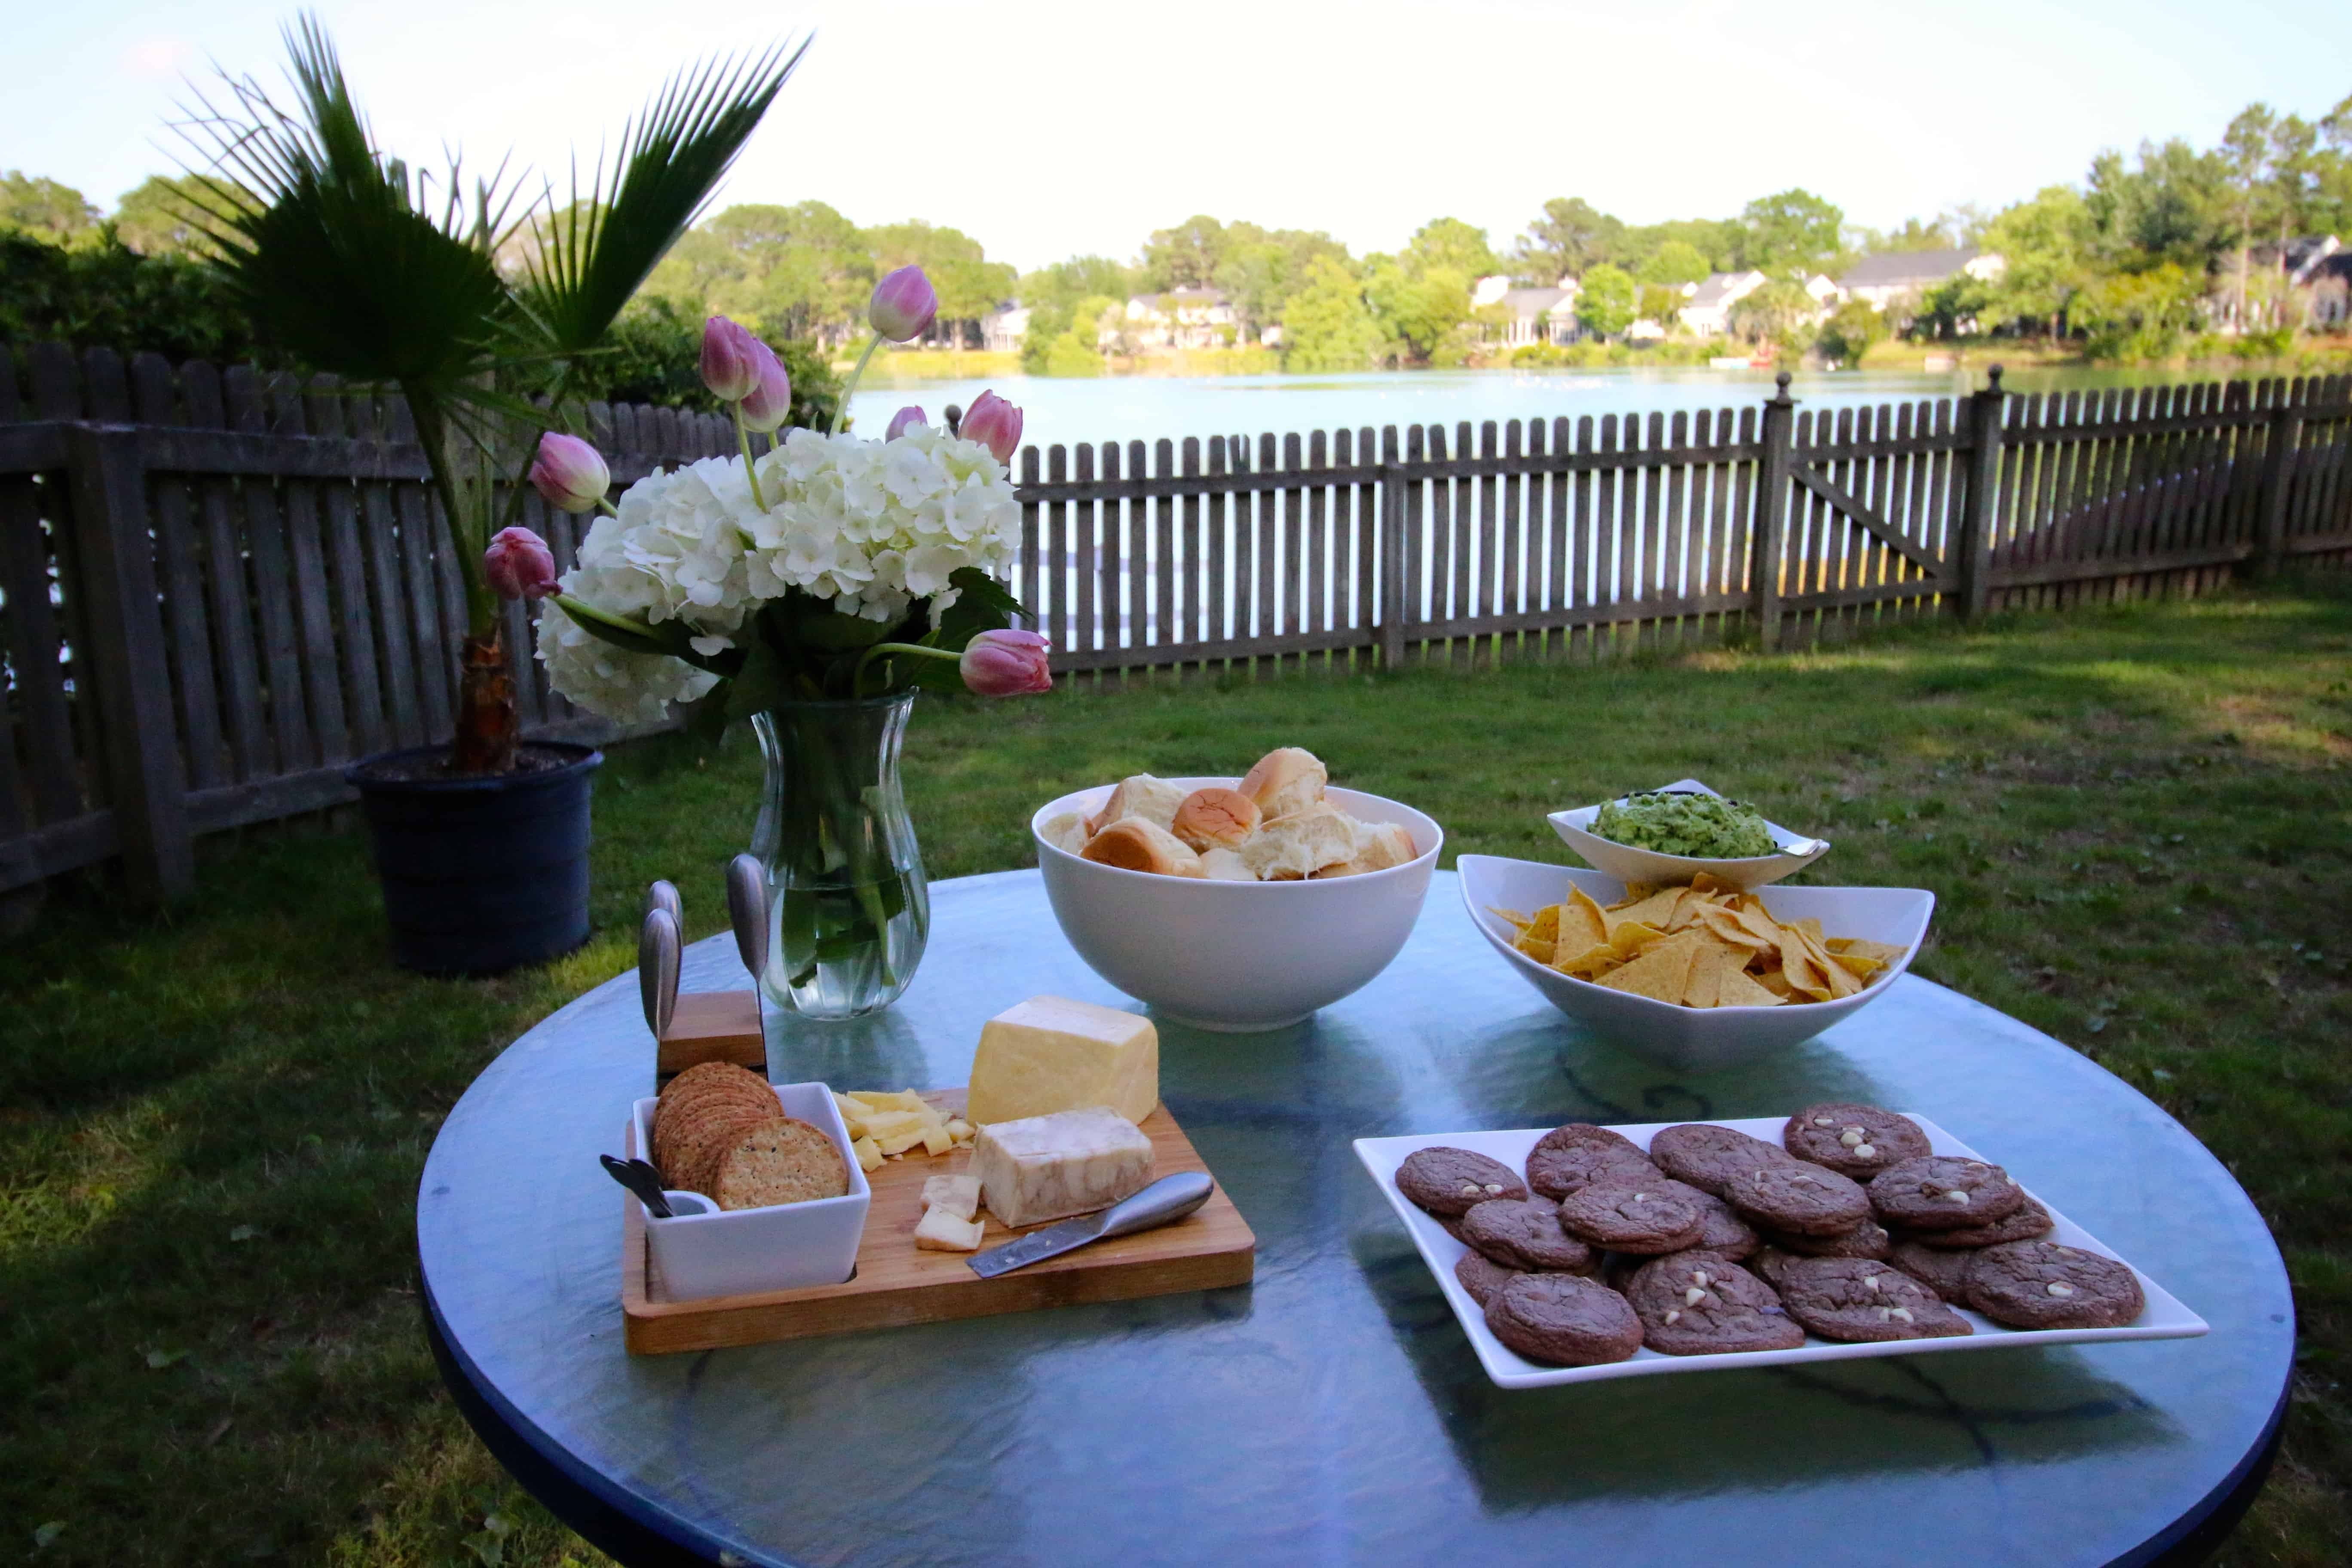 5 Tips For Hosting An Awesome Backyard Party Like Sean S 30th